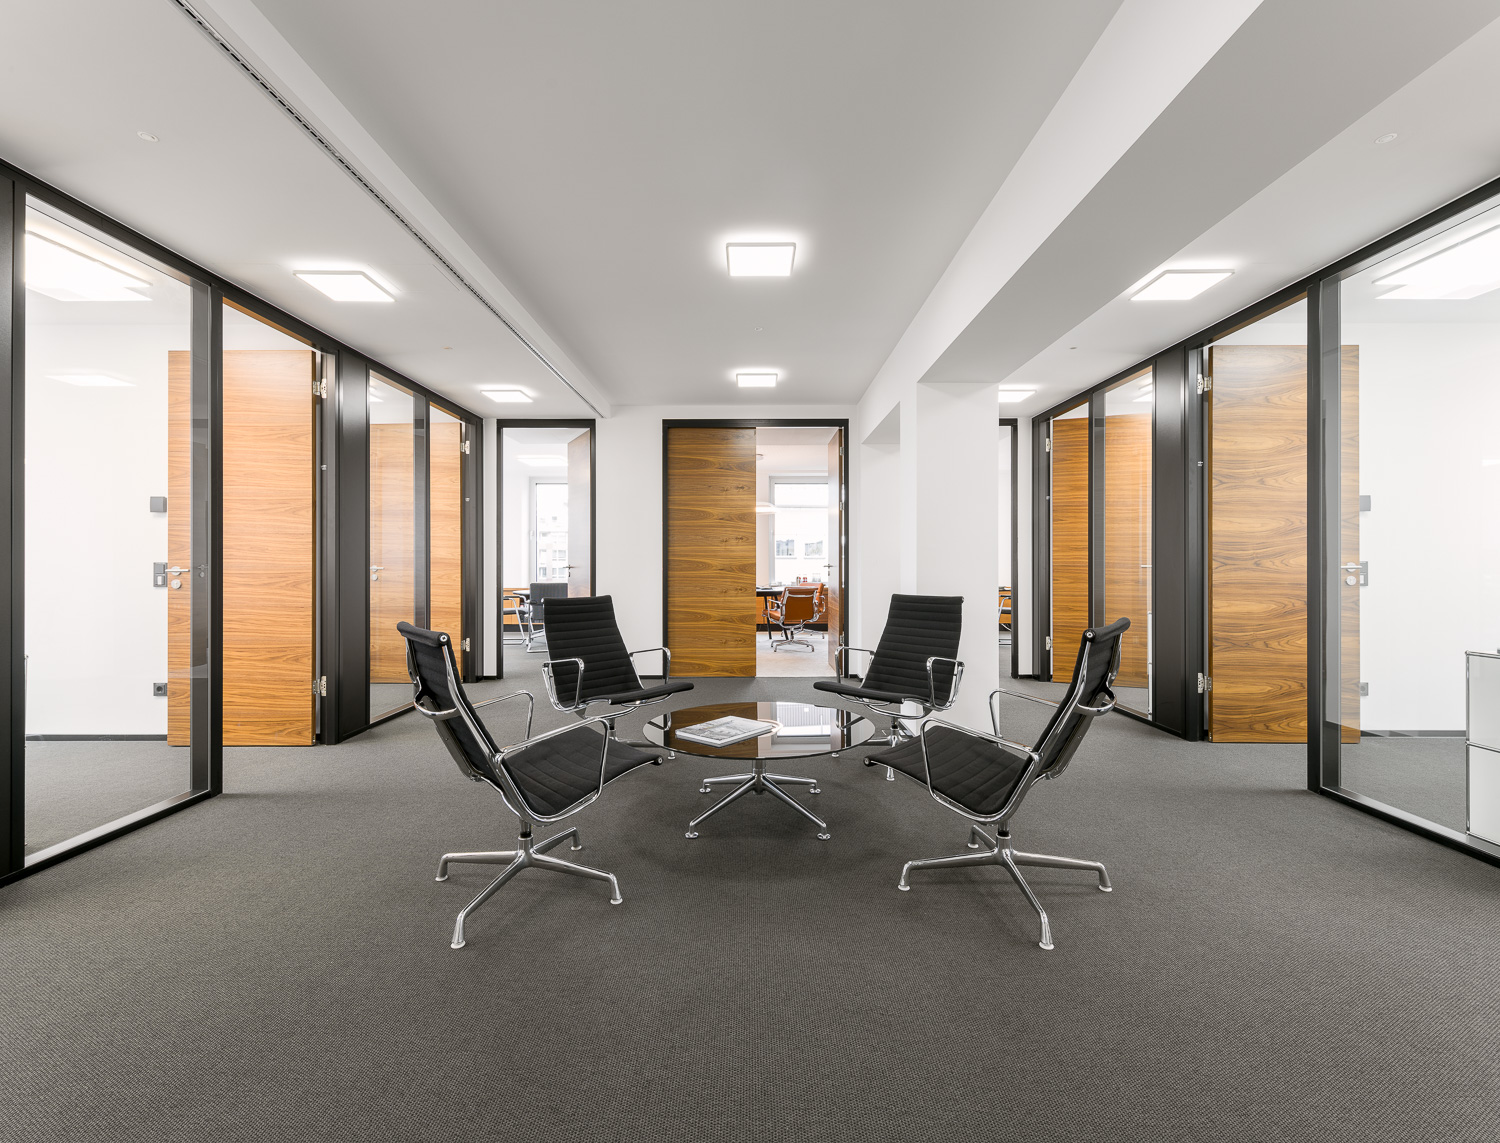 Interior partitions for the headquarters of ART-Invest, the largest German real estate fund